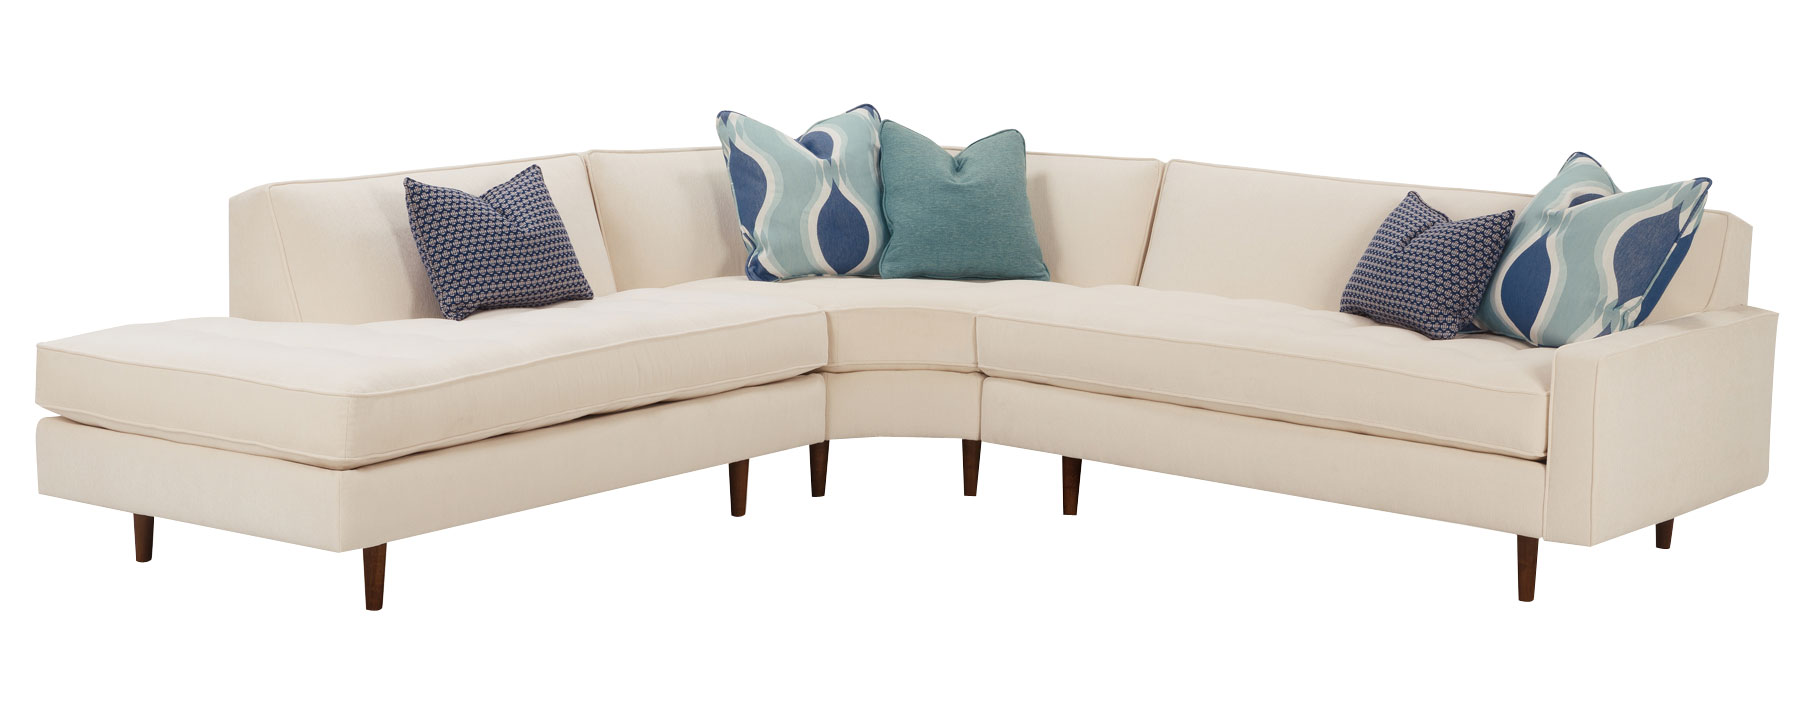 Zoey mid century modern with two configurations clubfurniture